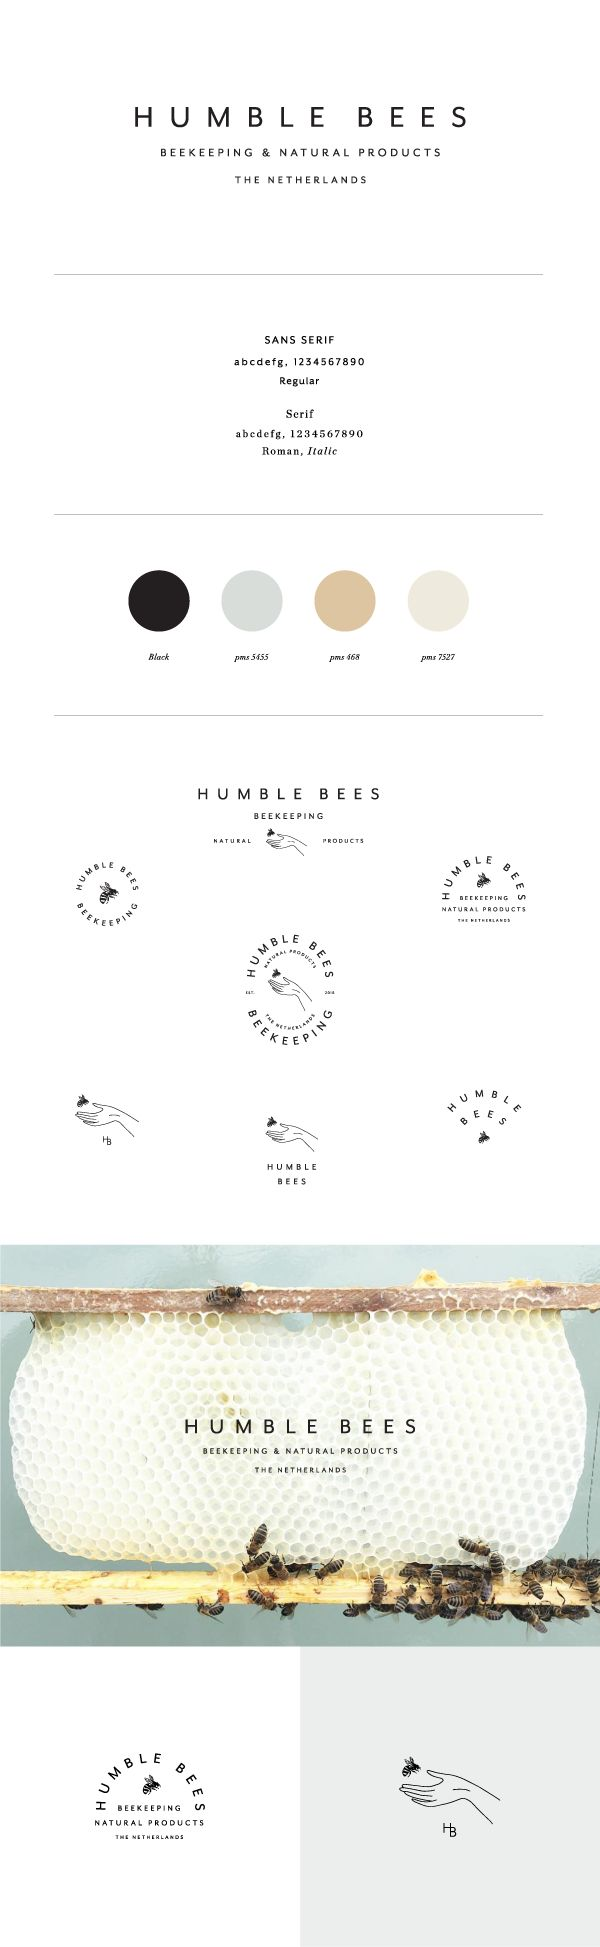 Humble Bees Branding by Saturday Studio